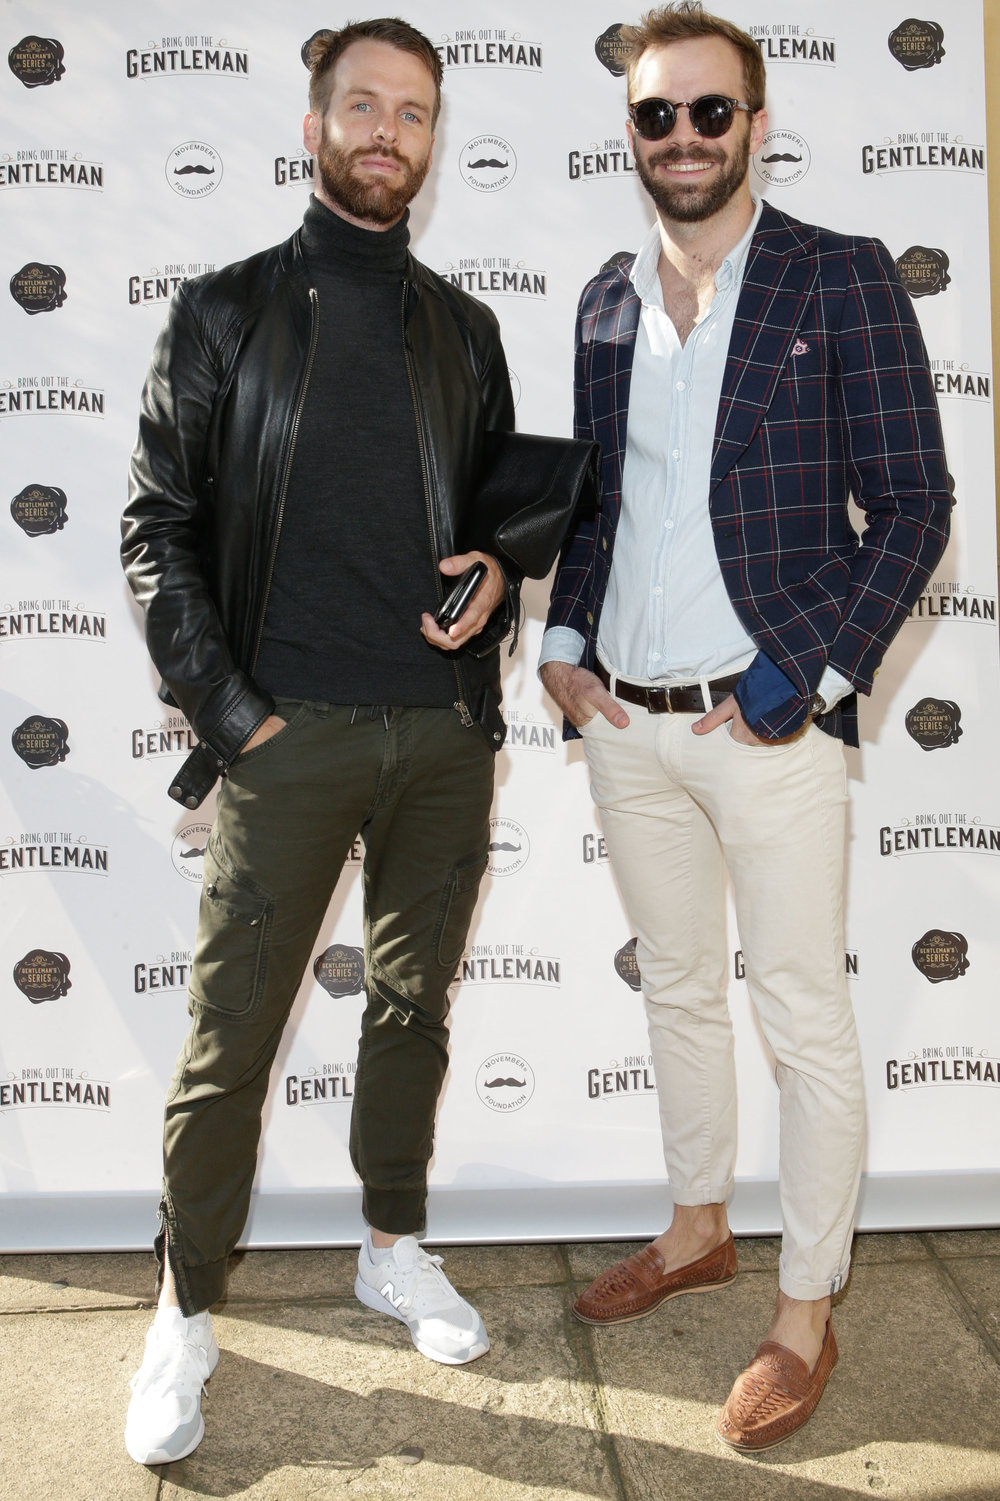 gentlemans-collection-movember-series-3-2016-guests.jpg